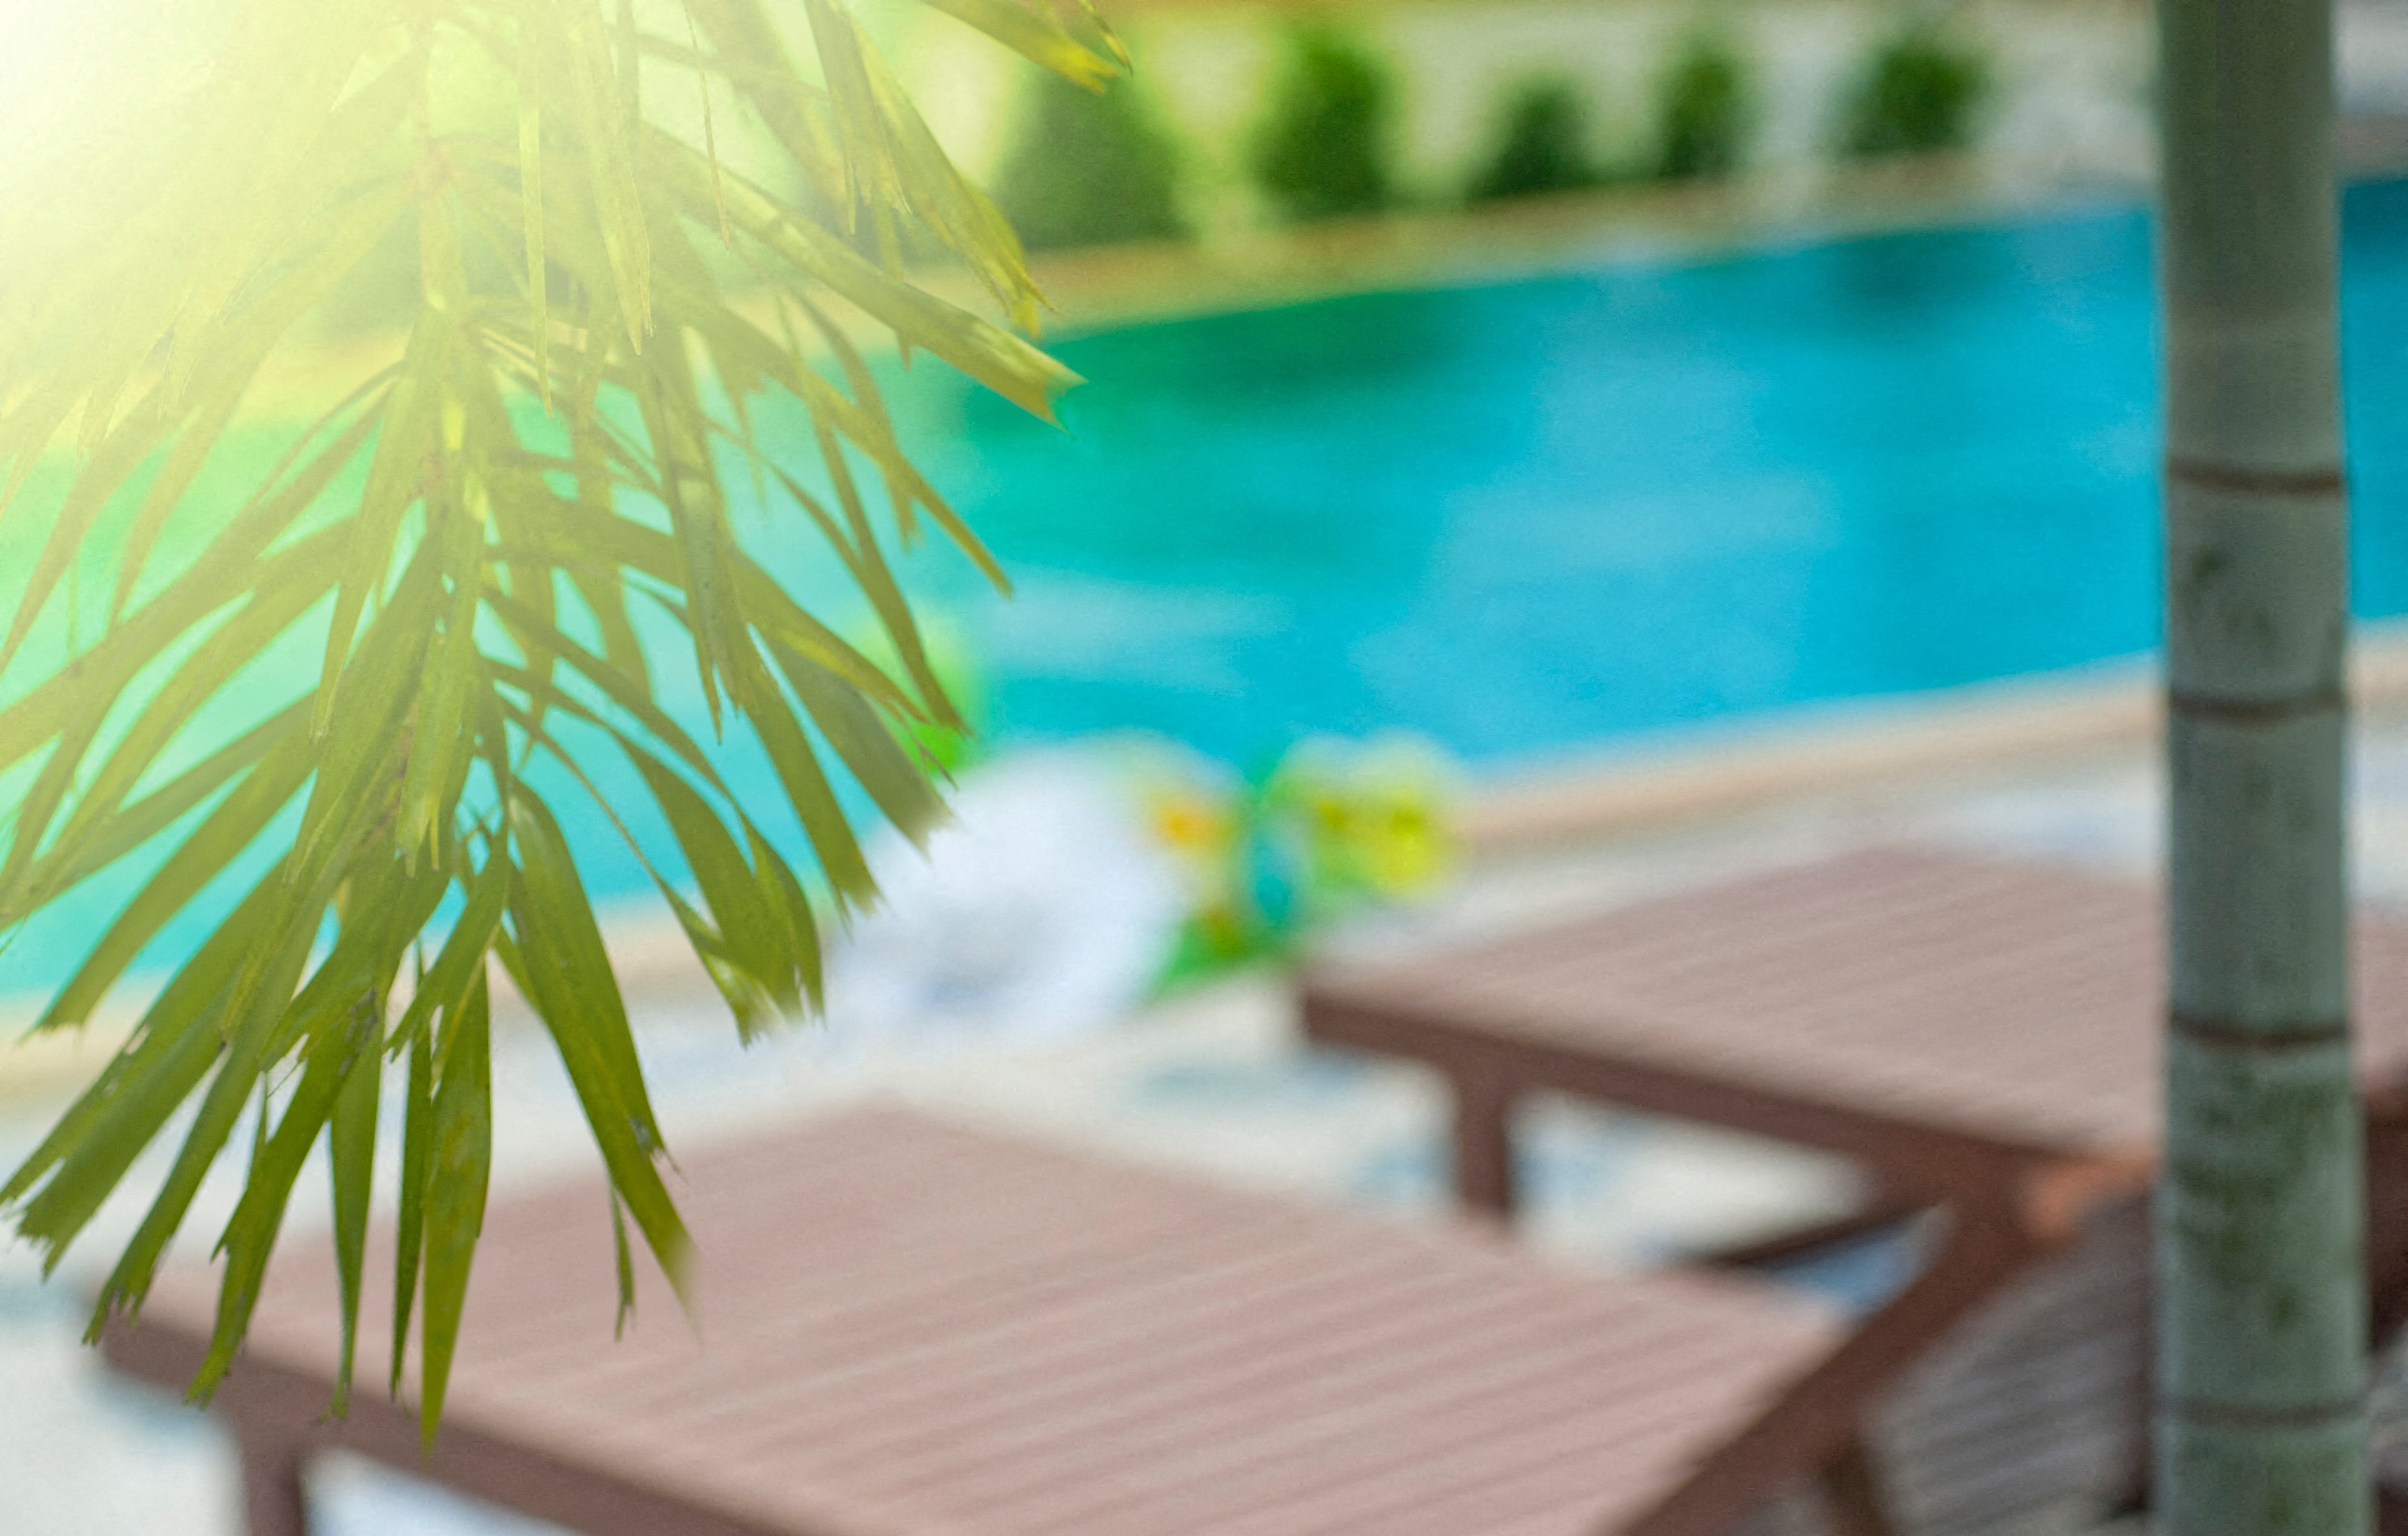 Stock Image of Palm Tree Over a Pool with Lounge Chairs